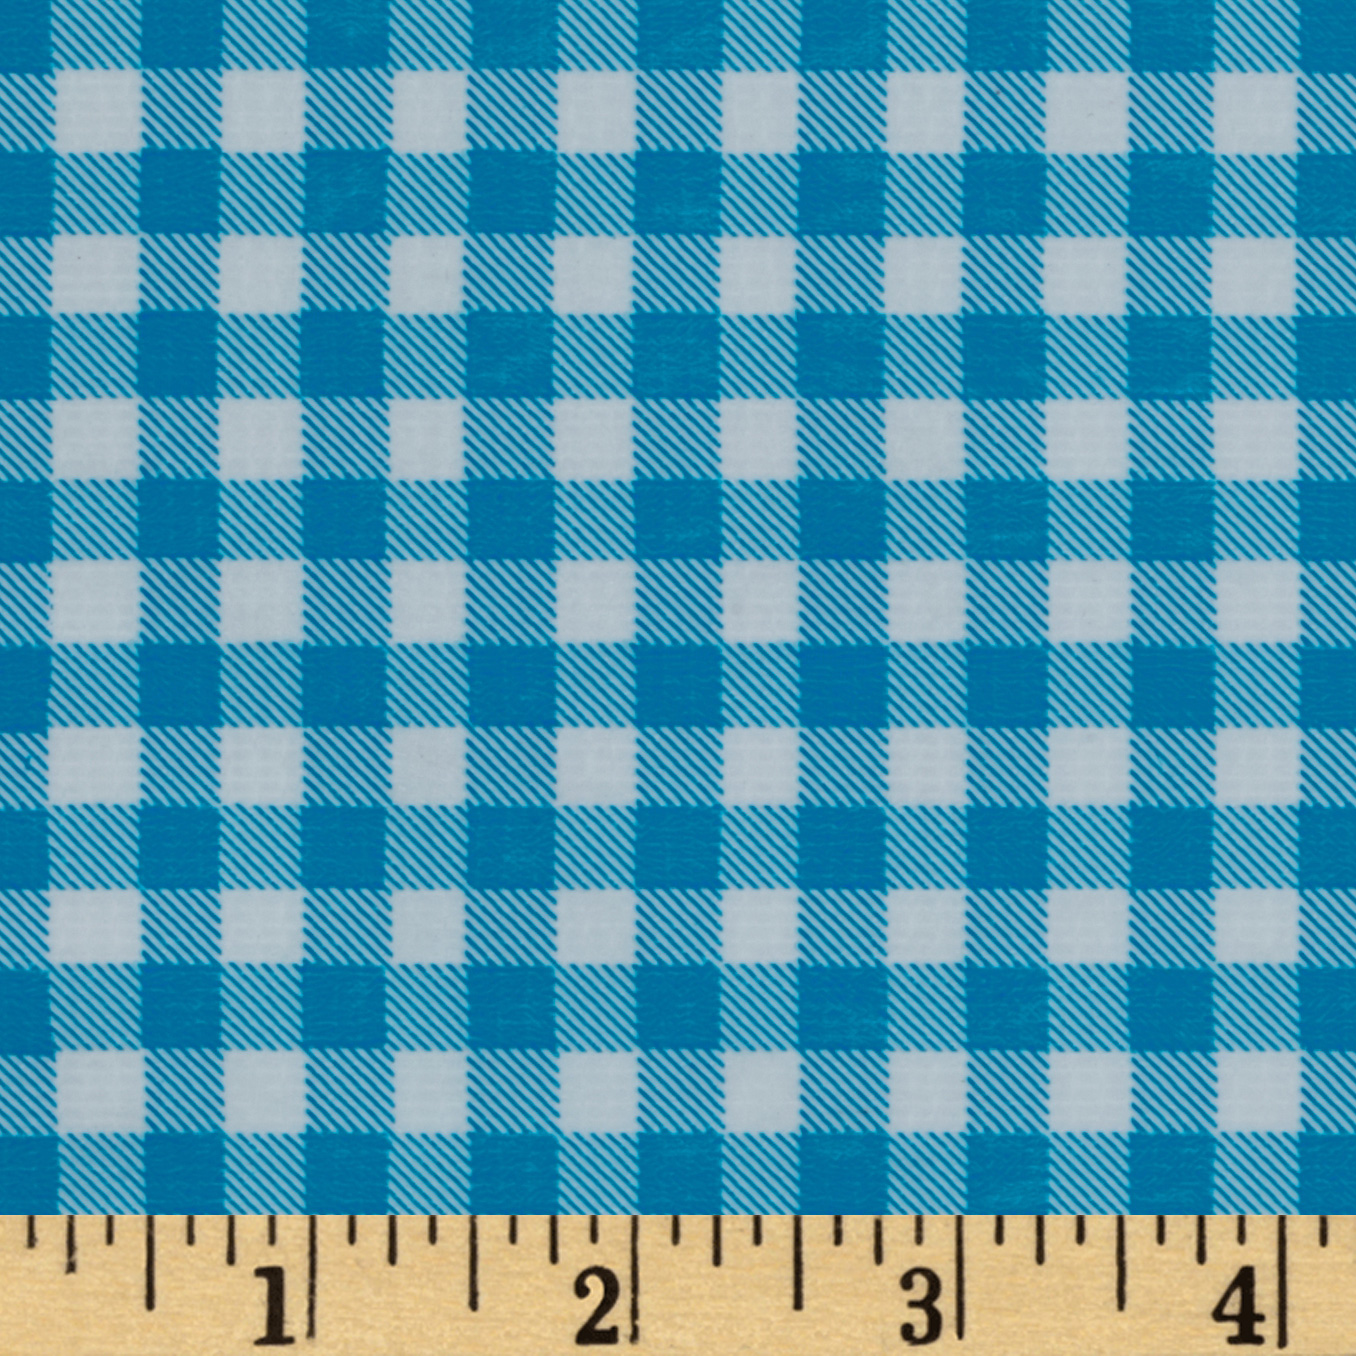 Oilcloth Gingham Sky Blue Fabric by Oilcloth International in USA